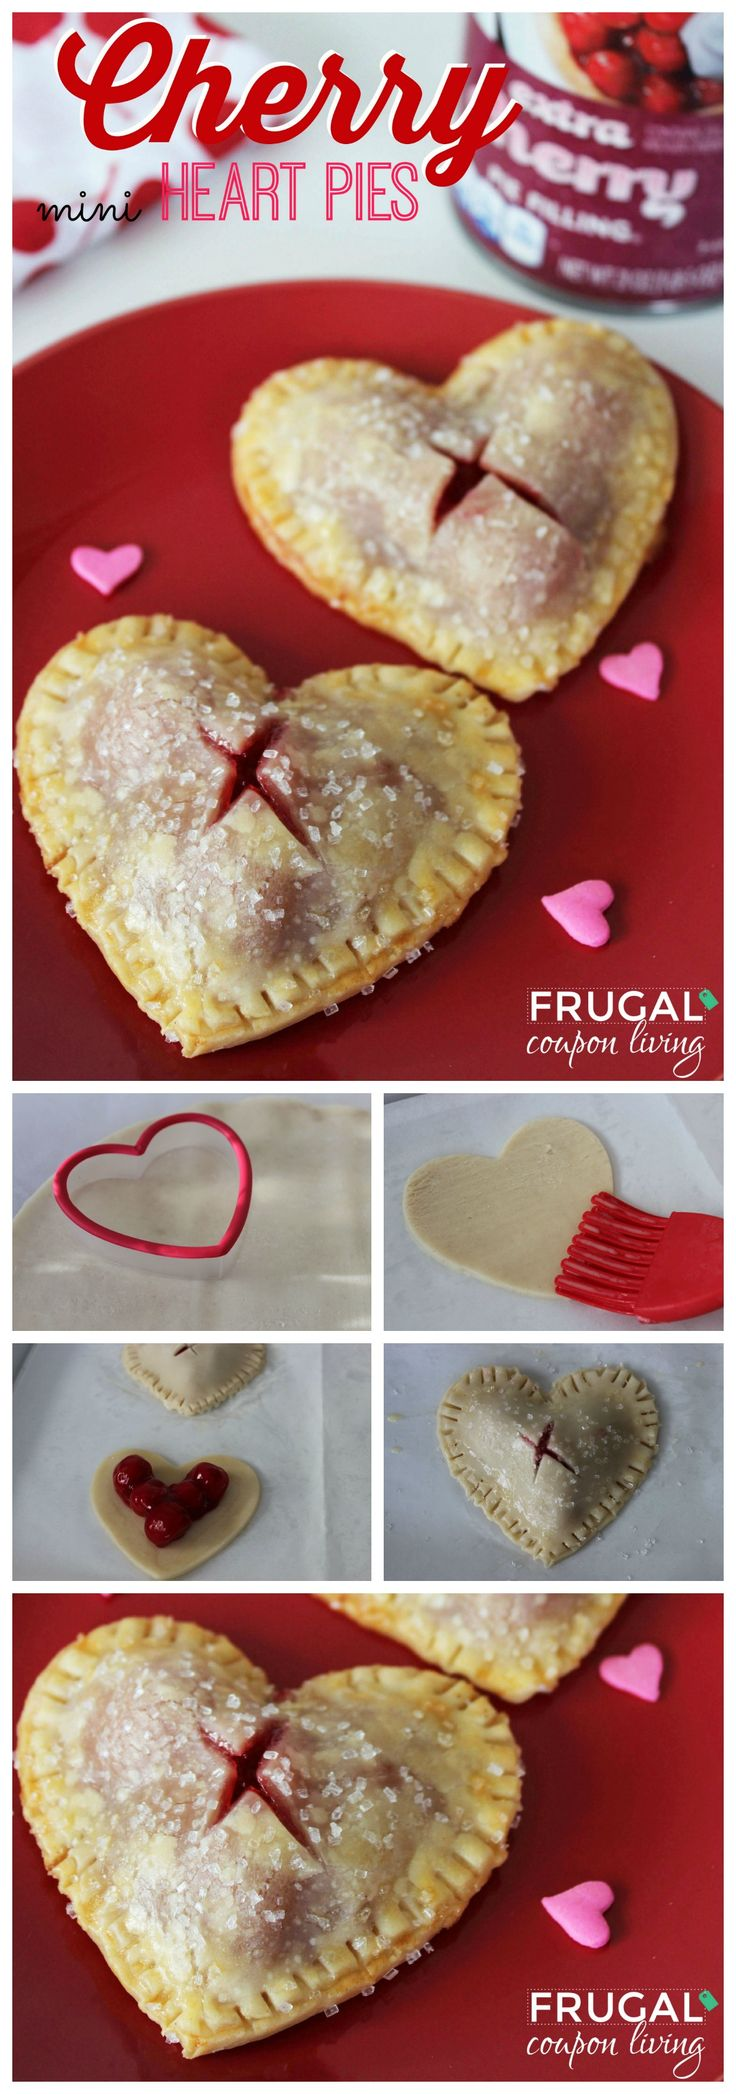 These Cherry Heart Pies are so cute and perfect for Valentine's Day!